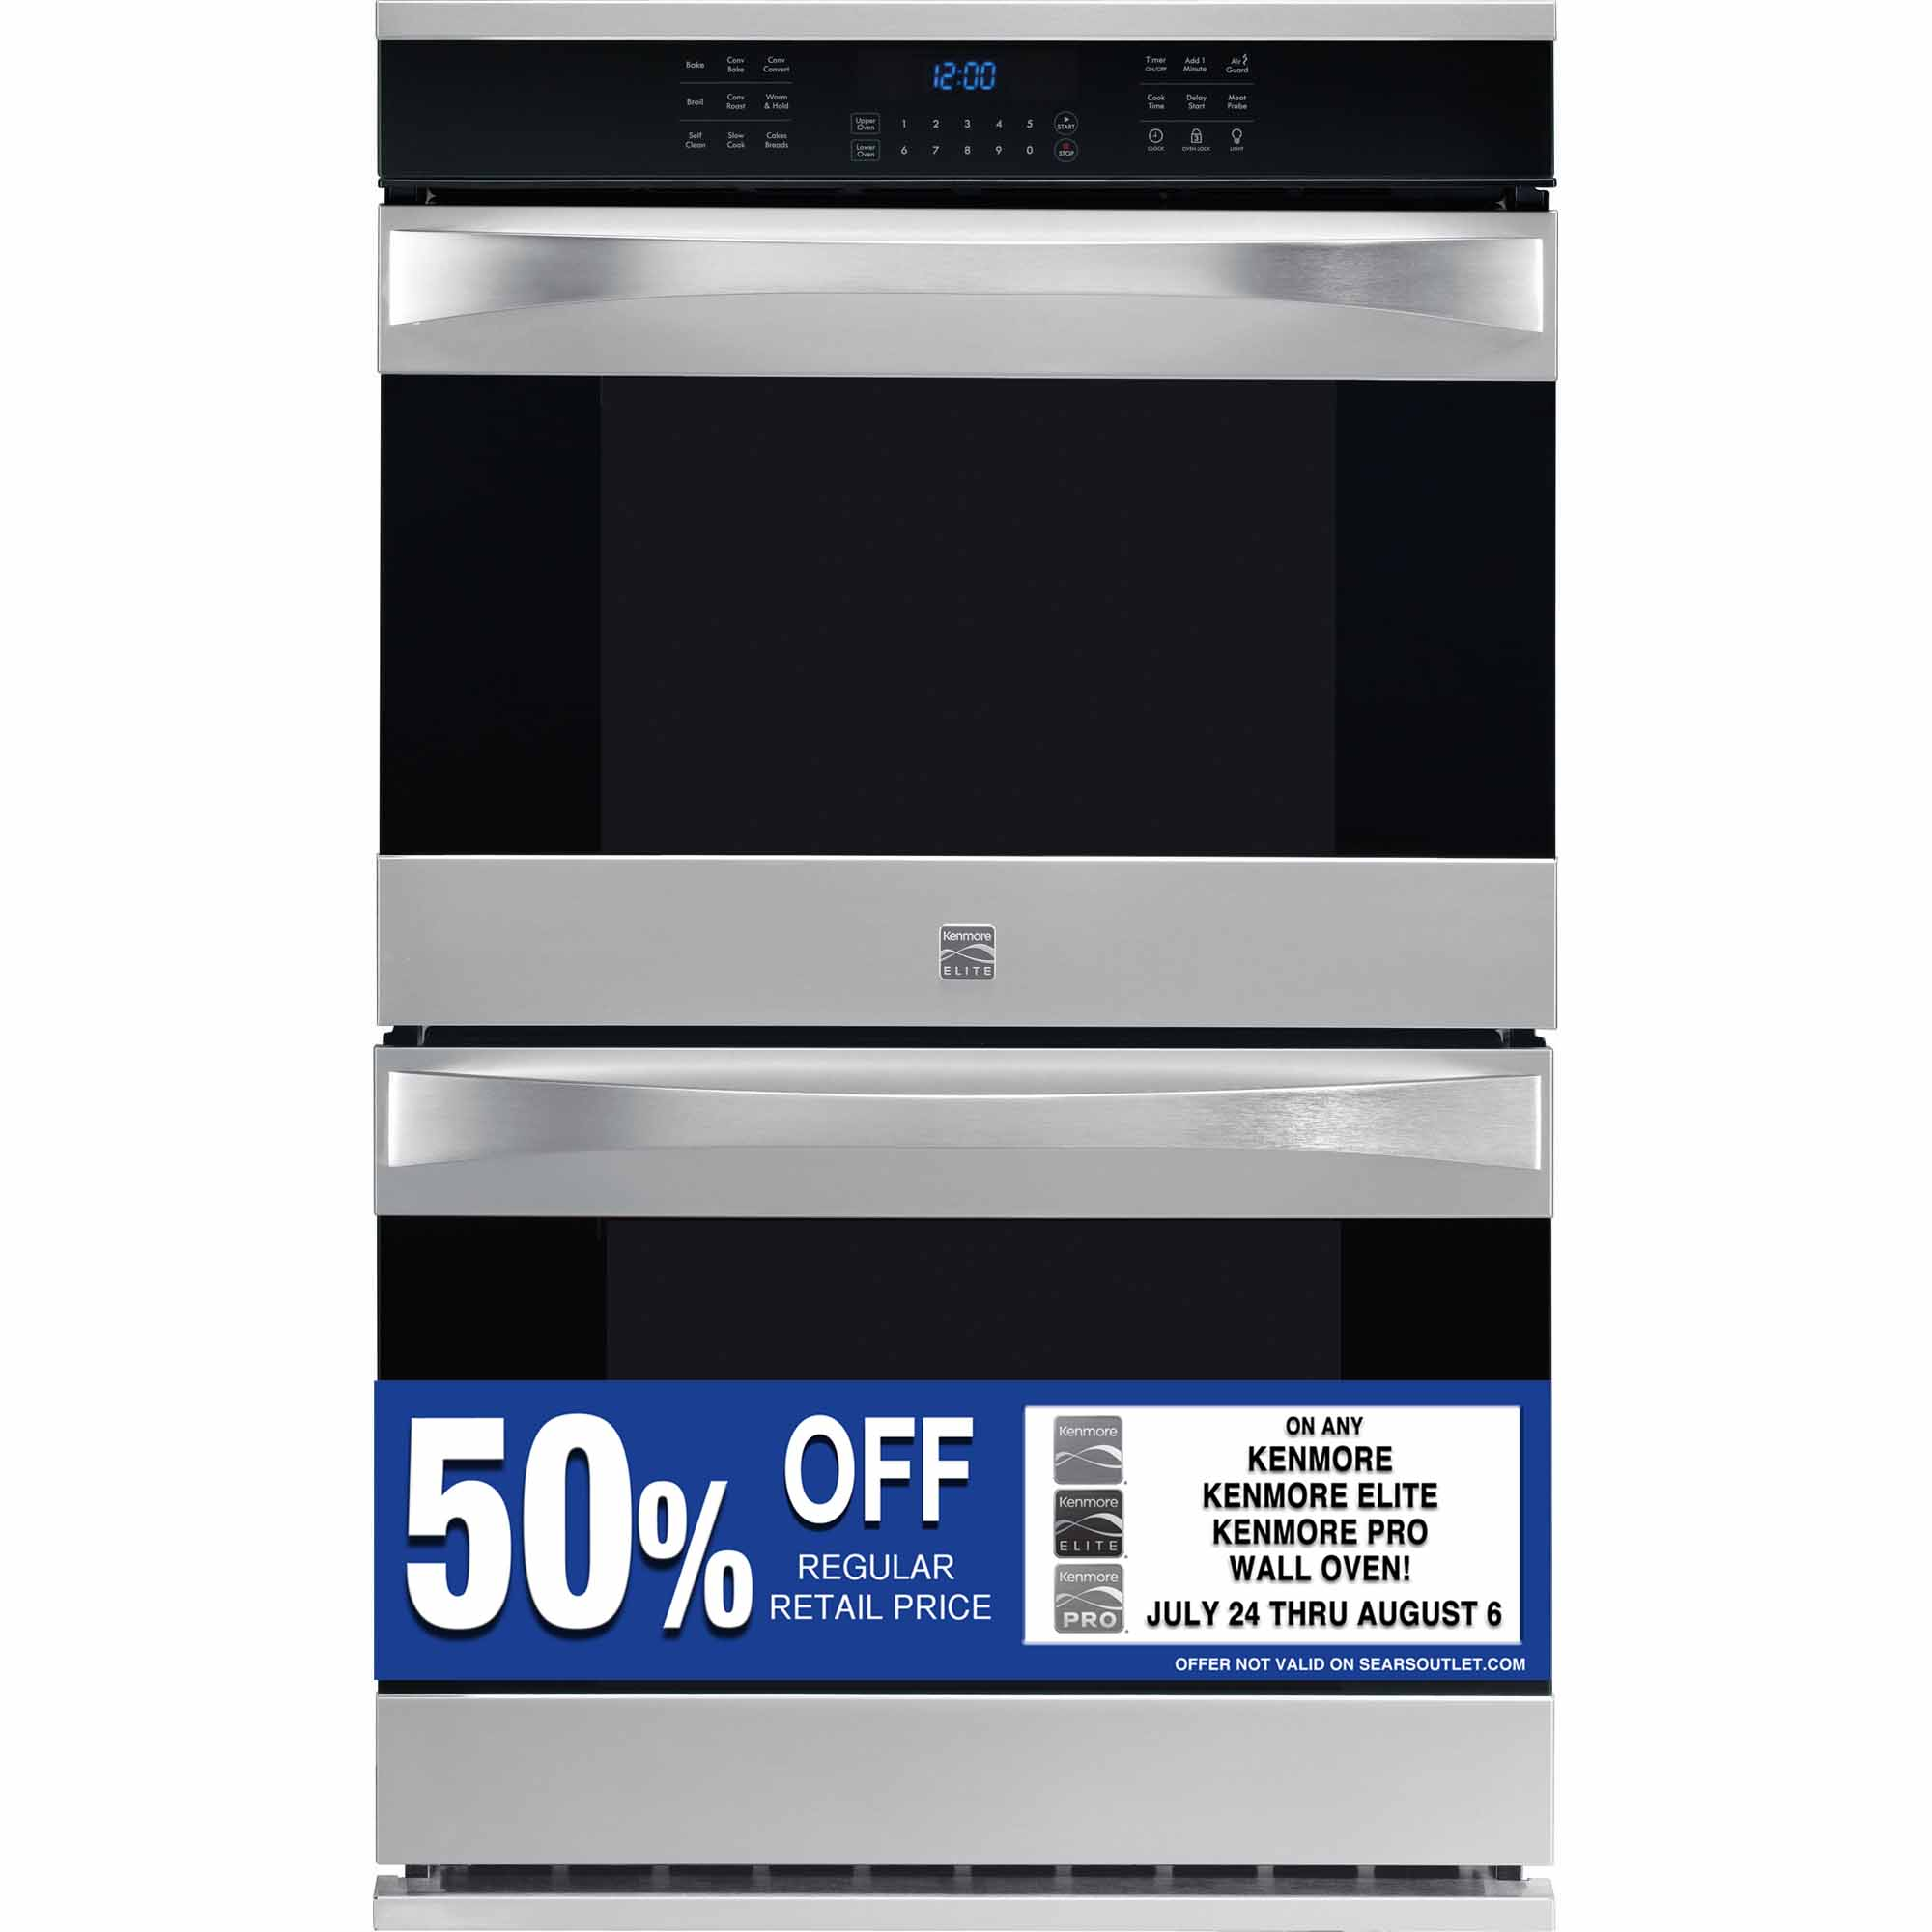 0012505803048 - 48473 30 ELECTRIC DOUBLE WALL OVEN W/ TRUE CONVECTION™ - STAINLESS STEEL